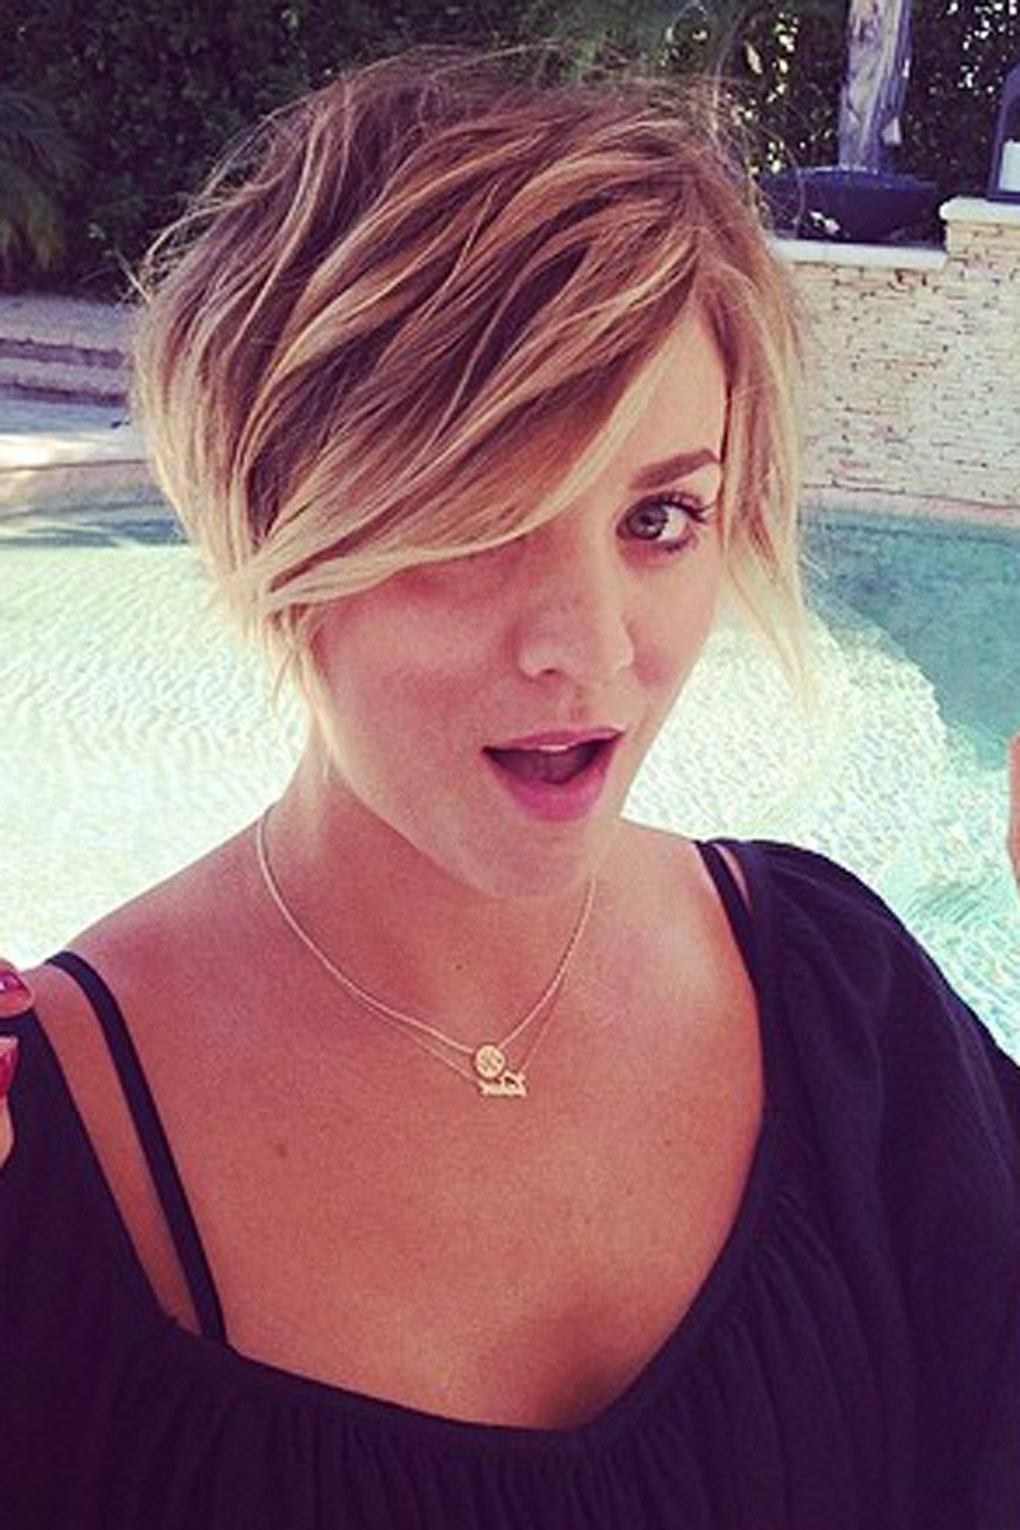 Kaley Cuoco Pixie Cut Hairstyle Photos | Glamour Uk For Kaley Cuoco New Short Haircuts (View 21 of 25)